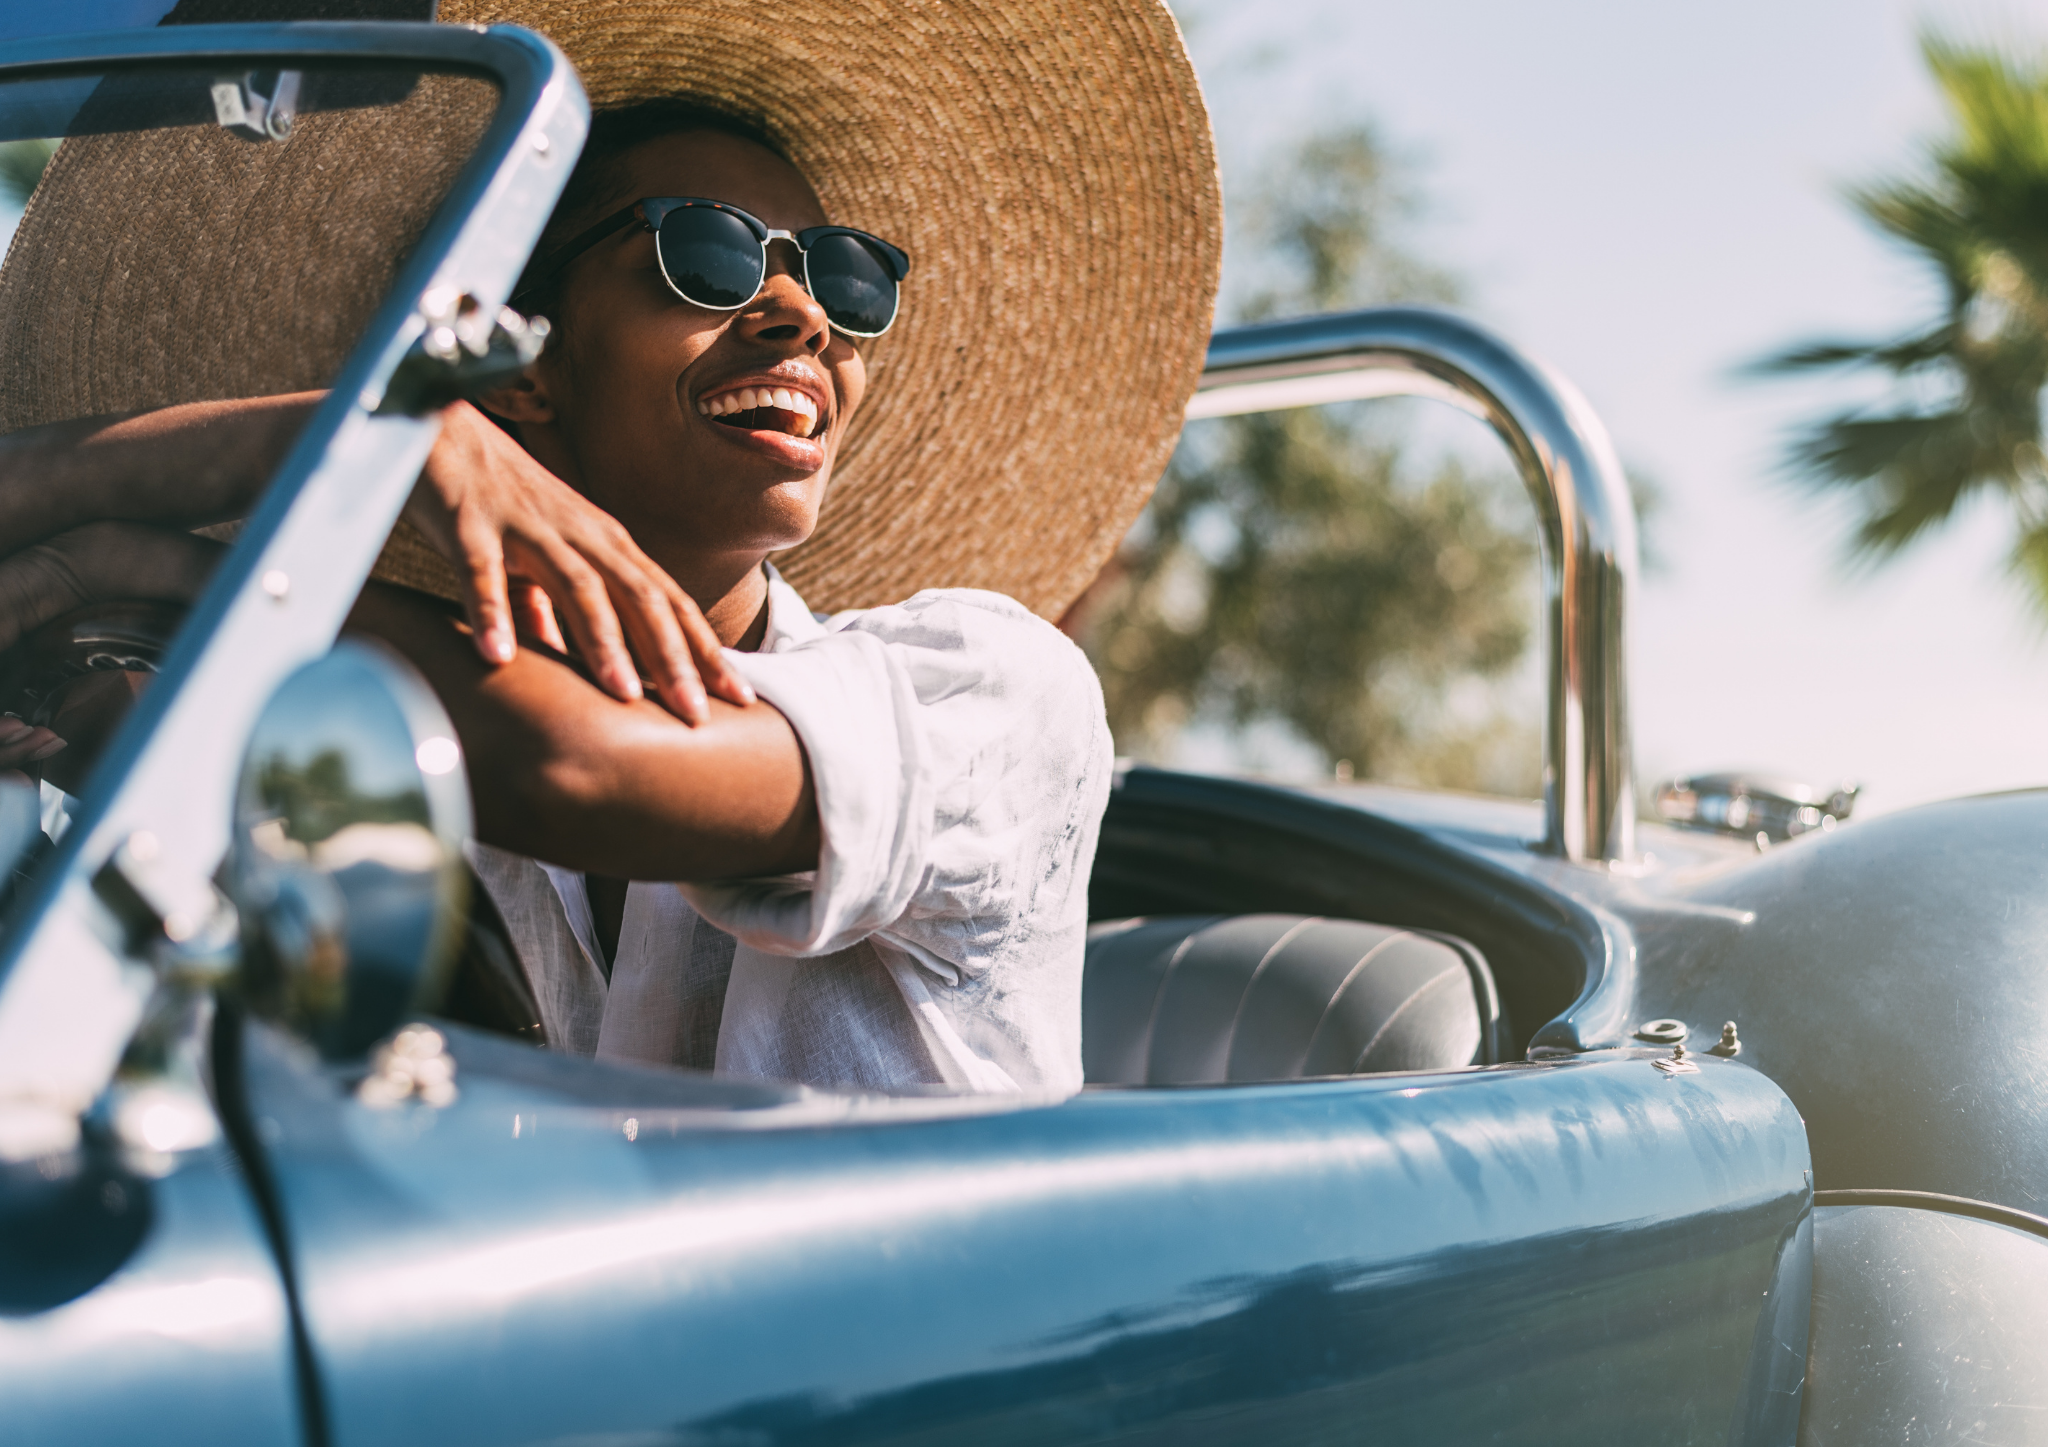 Long weekend safety tips: How to stay safe while still having fun in the sun.